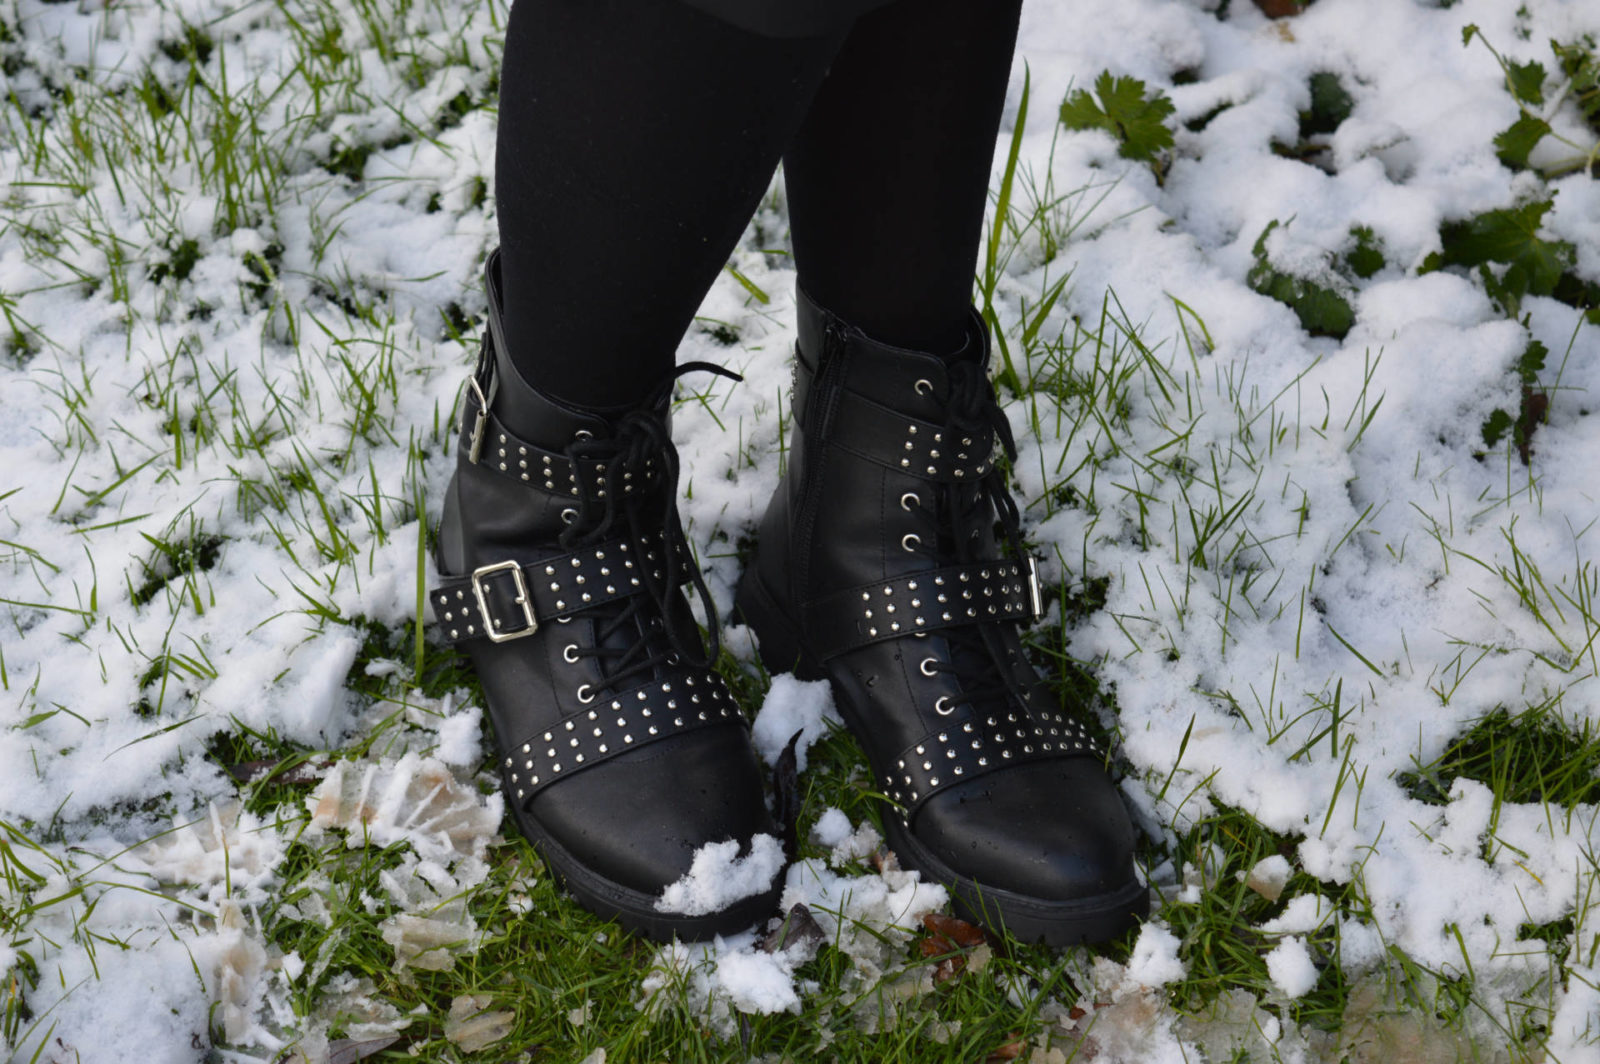 Match Made in Seven: Punk, PrettyLittleThing studded biker boots